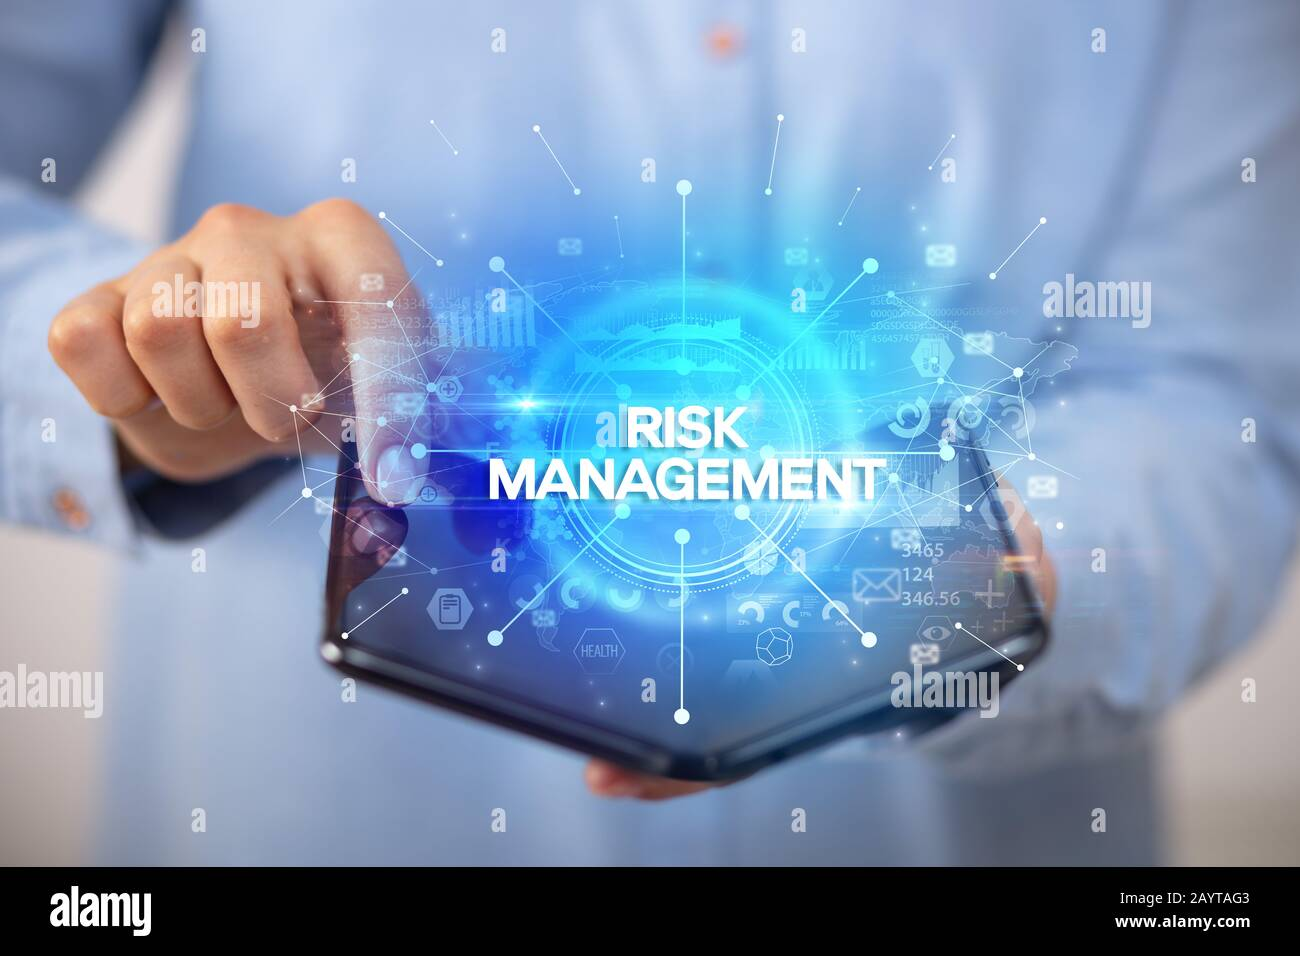 Businessman holding a foldable smartphone with RISK MANAGEMENT inscription, new business concept Stock Photo